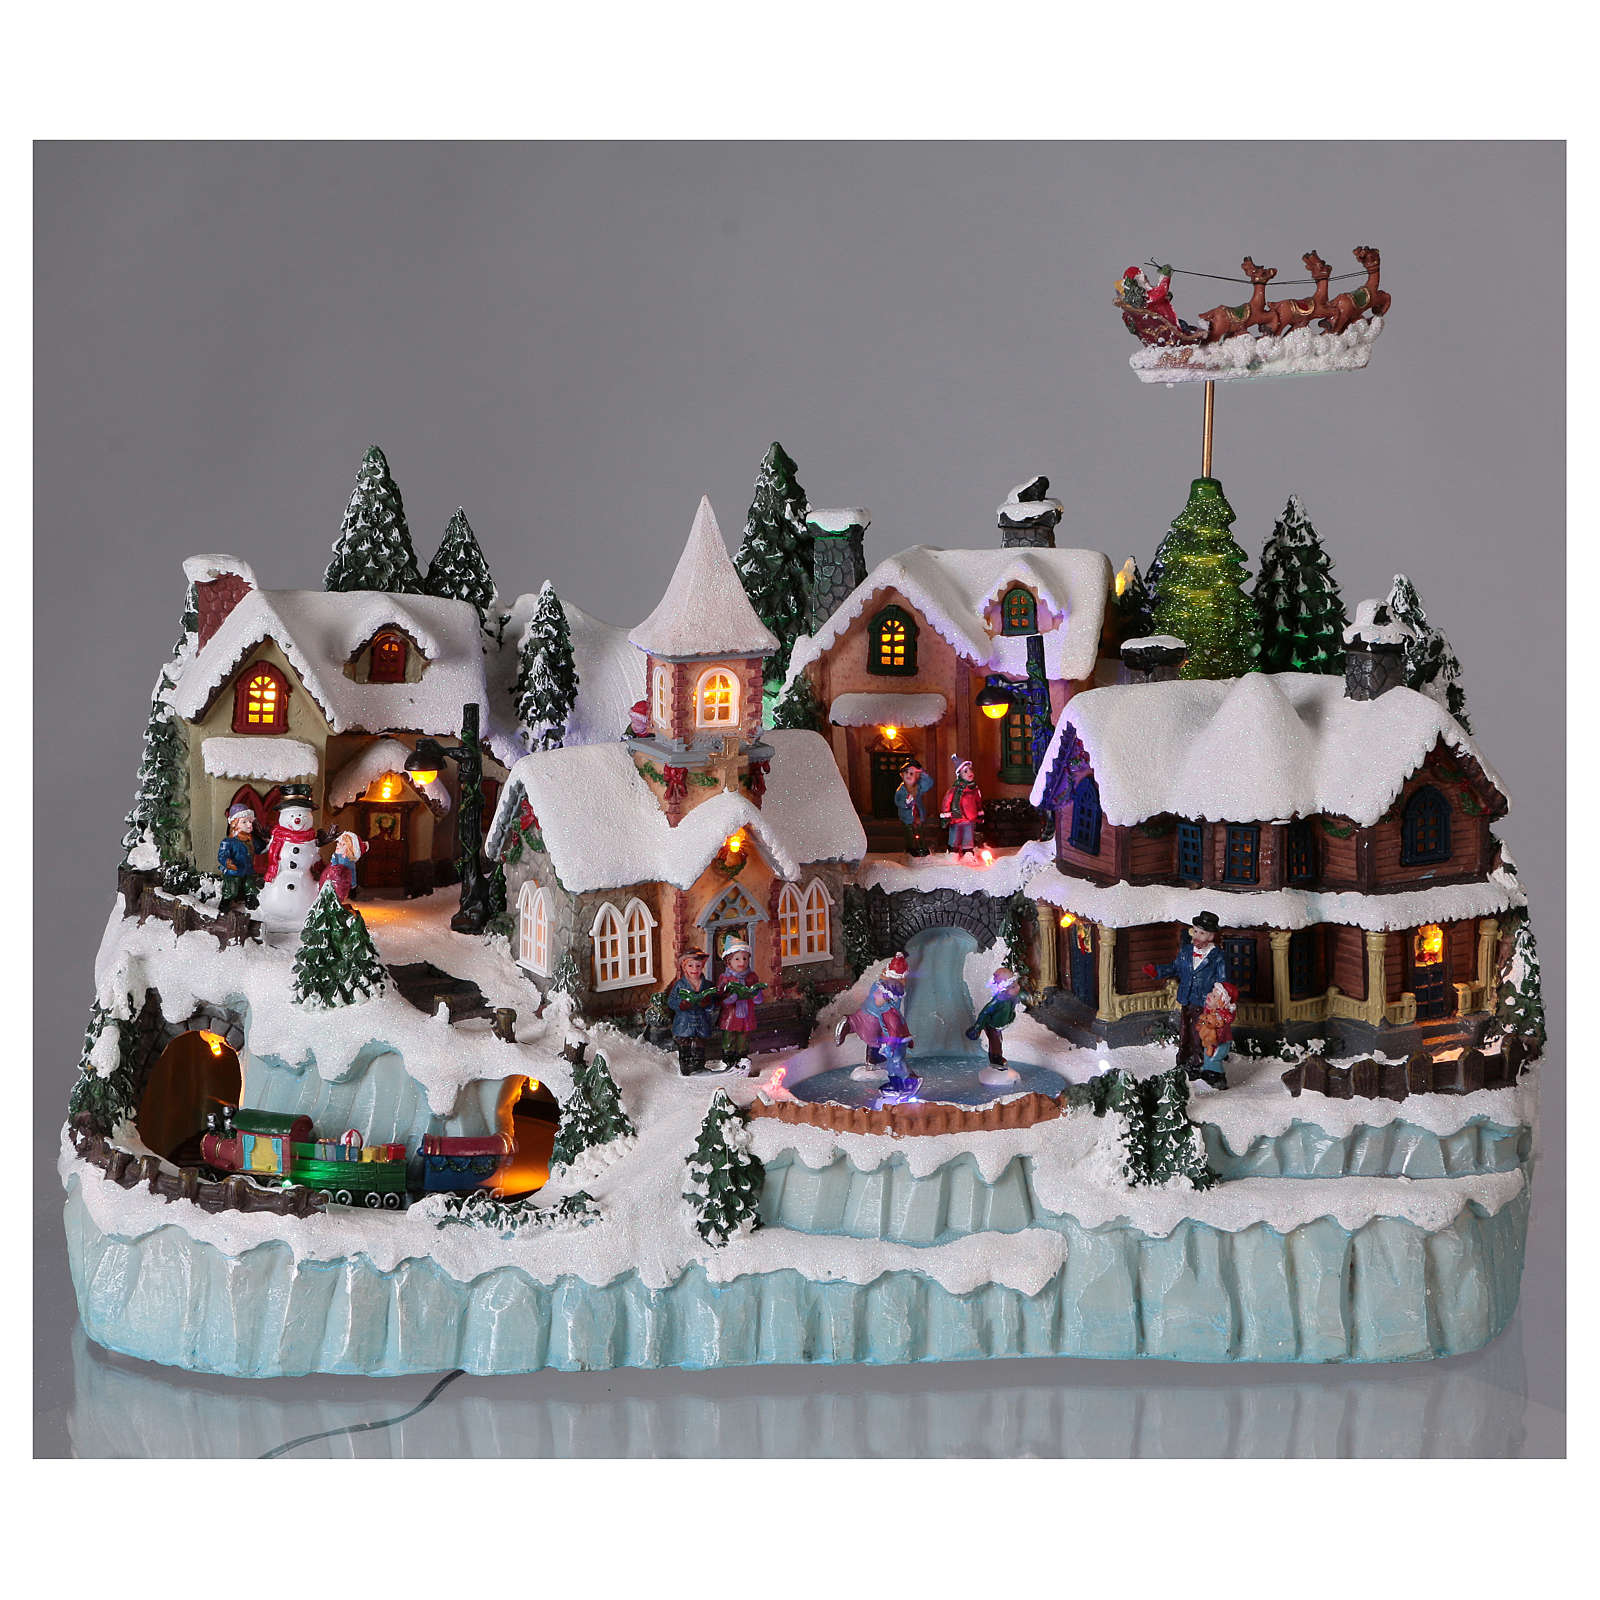 Christmas Village.Christmas Village Scene With In Motion Skaters And Train 40x55x30 Cm Electric Powered